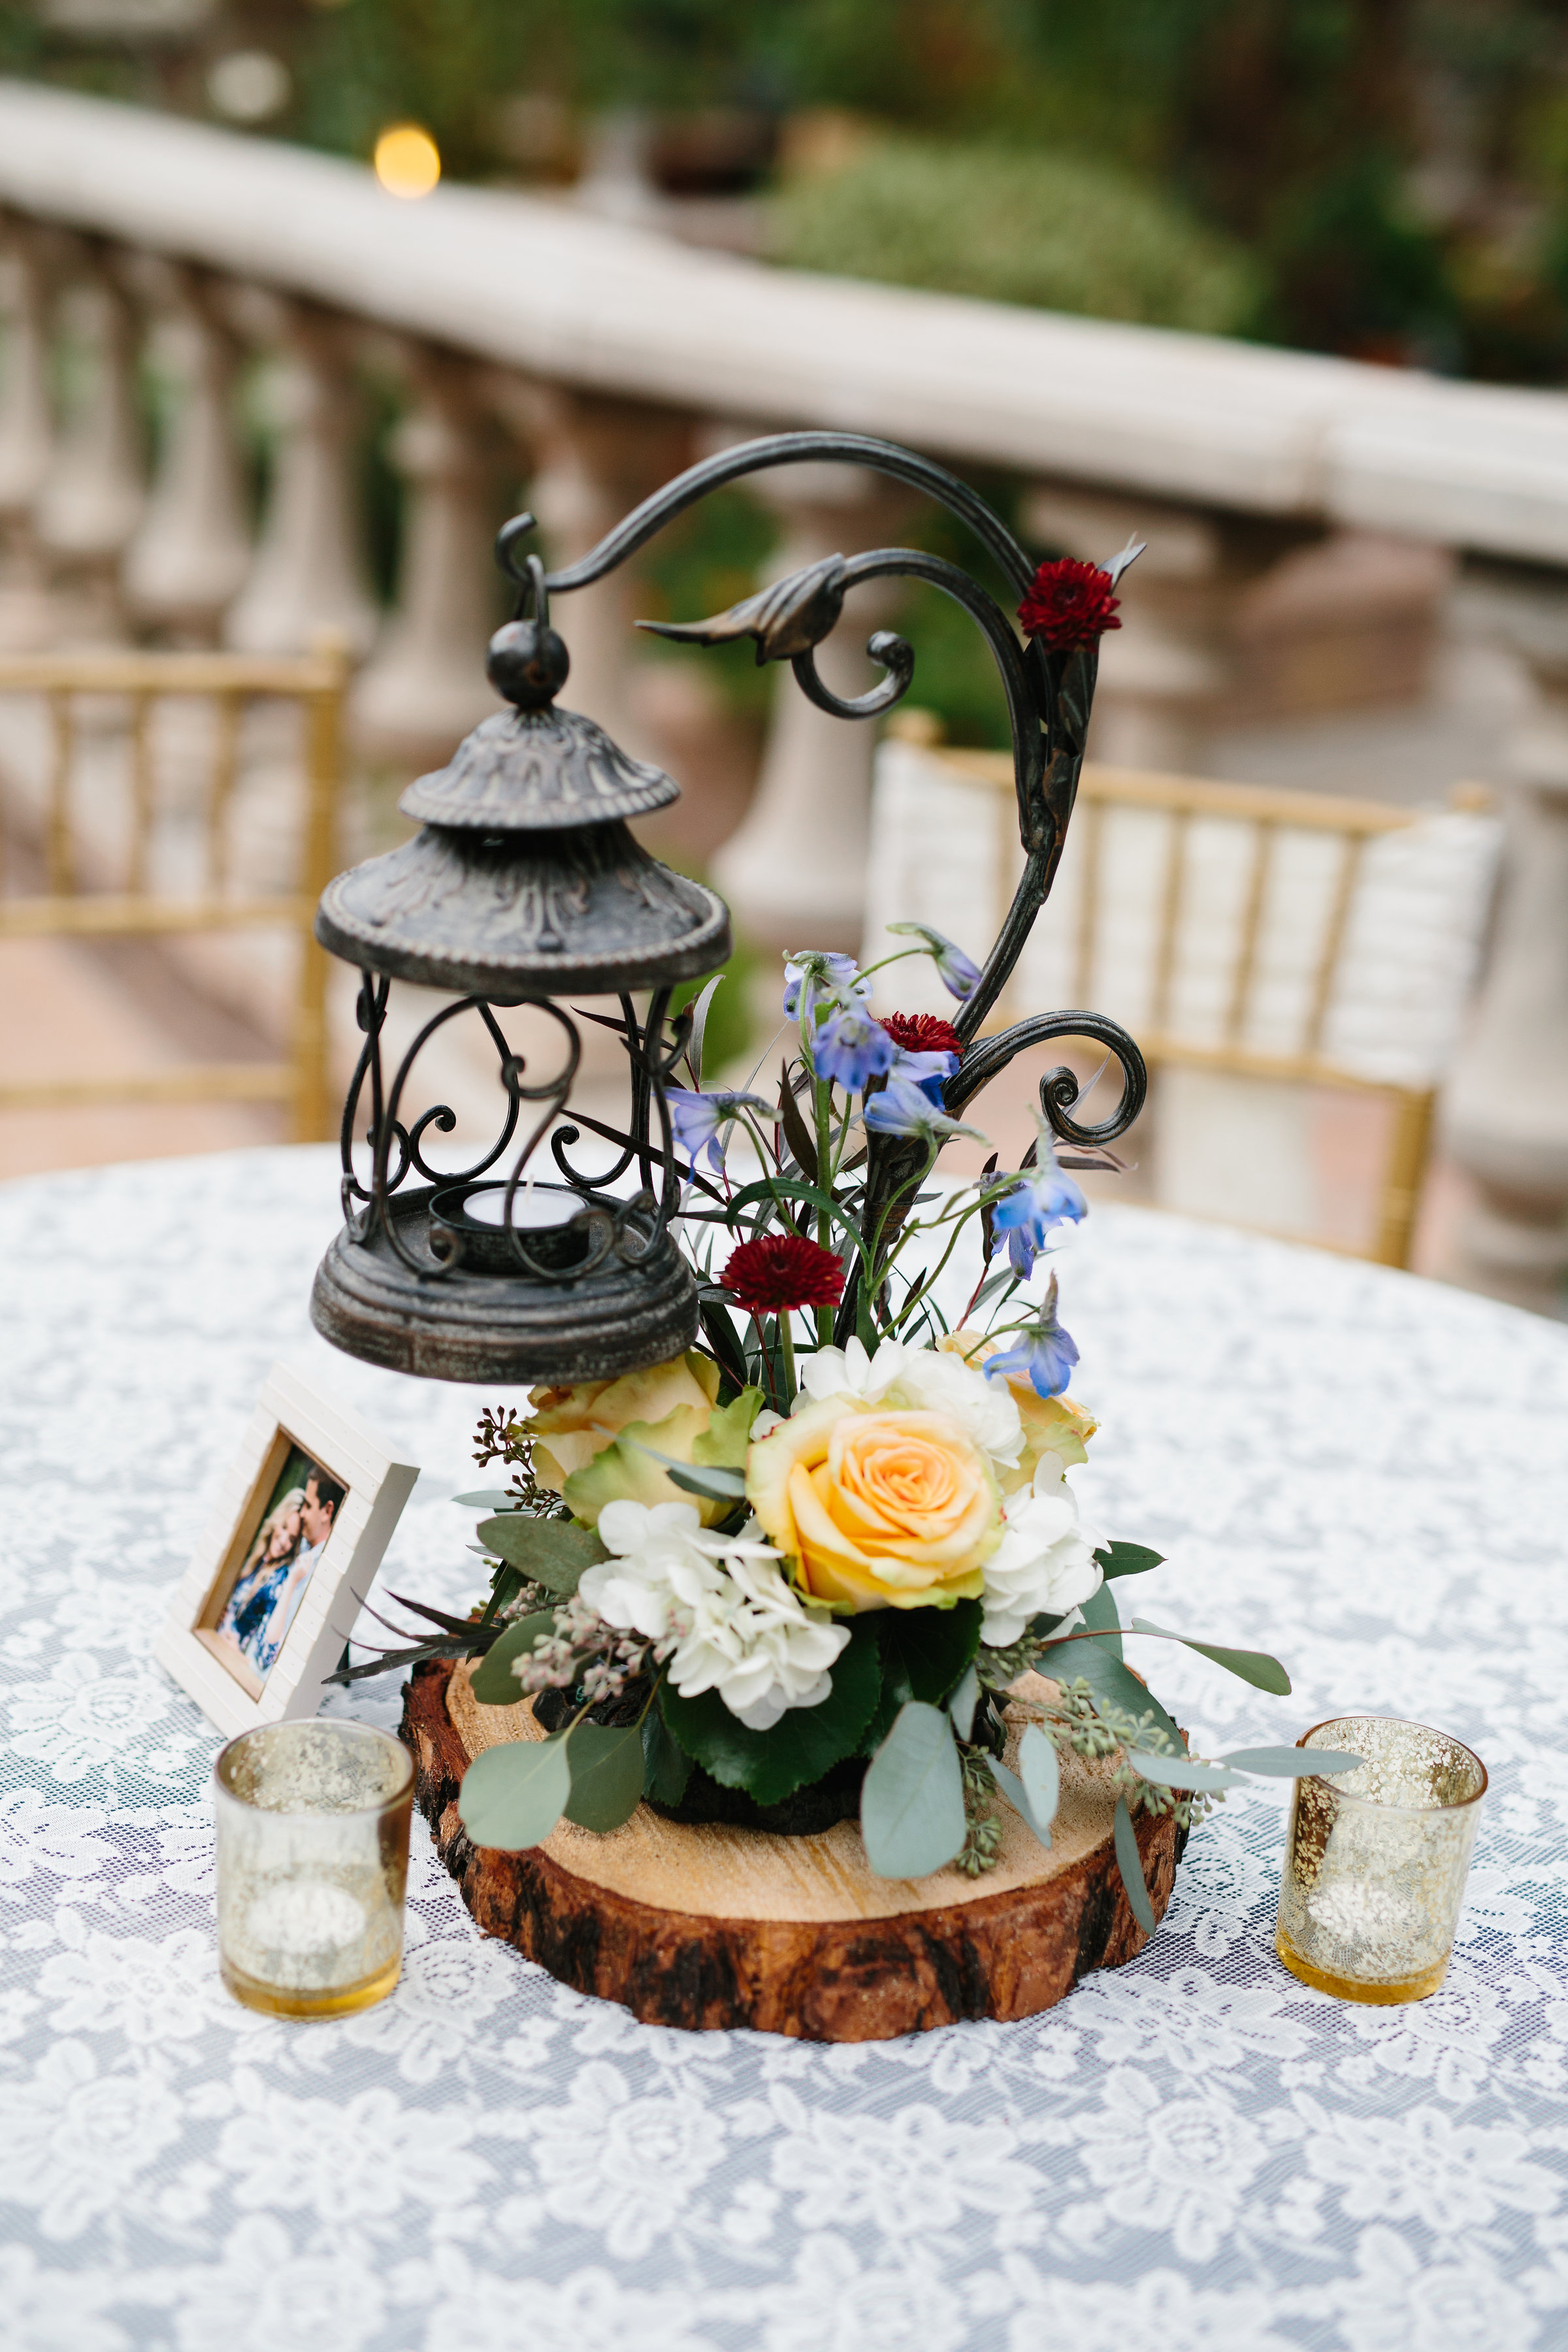 Lantern - It is our most versatile center piece of our collection. It can be rustic, charming, storybook, vintage, garden and so many other themes.